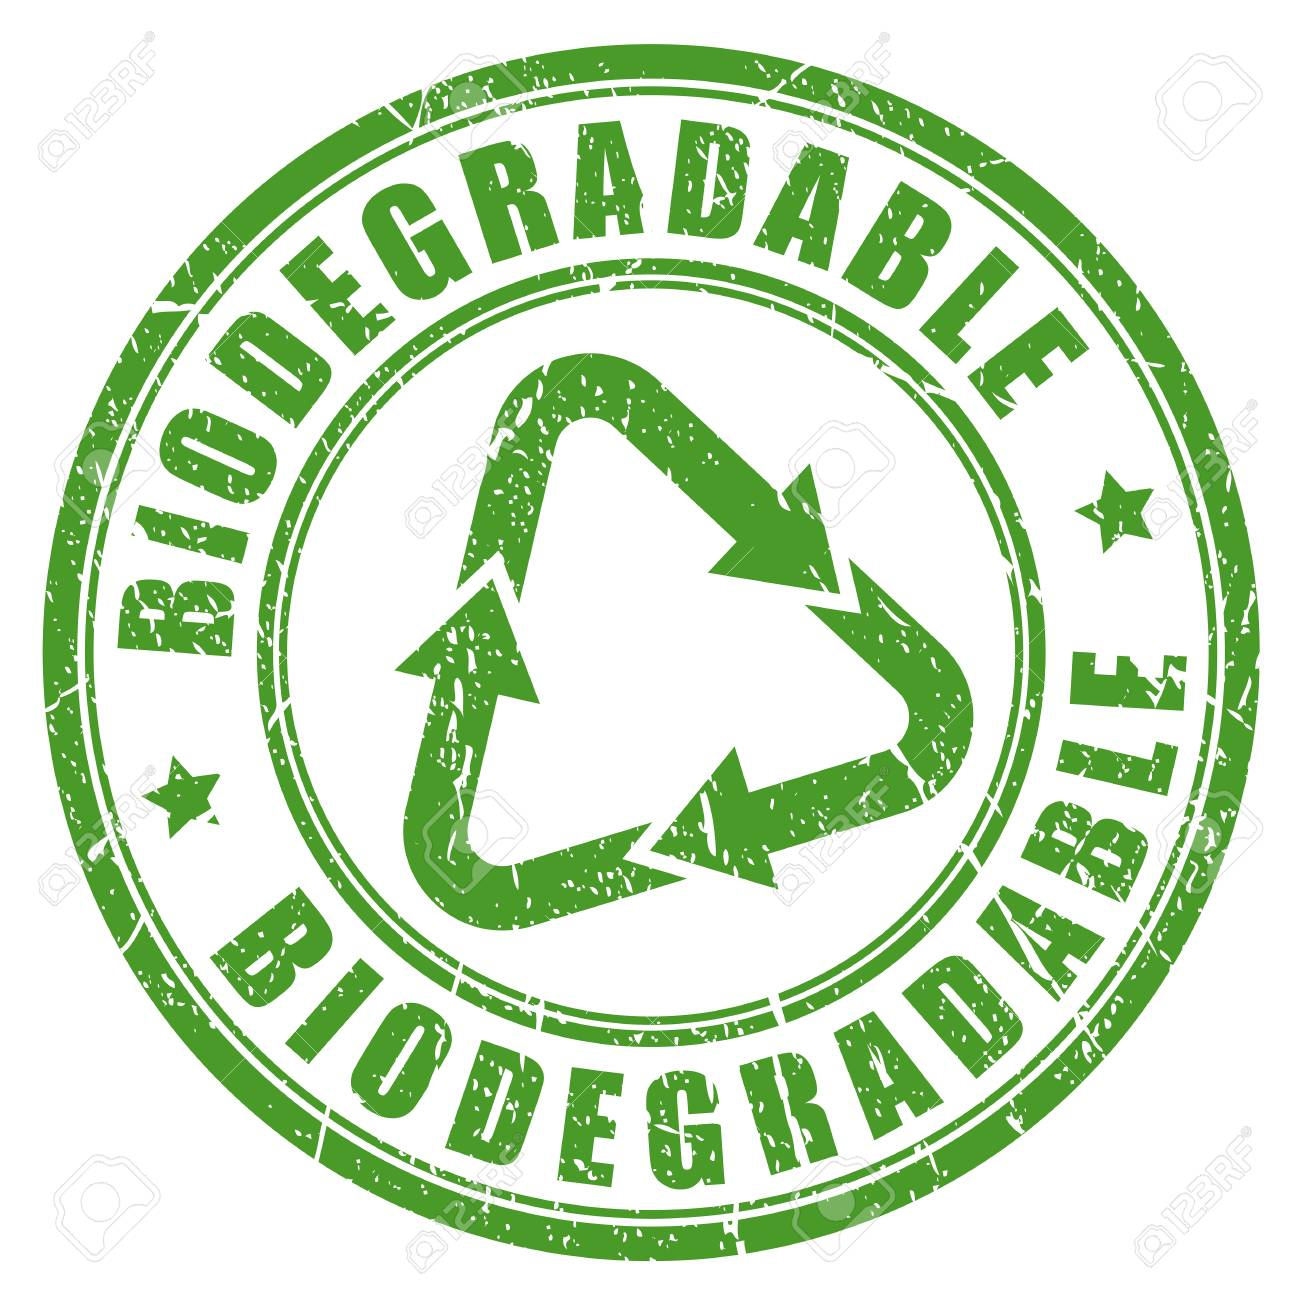 Biodegradable green rubber stamp - 89089278